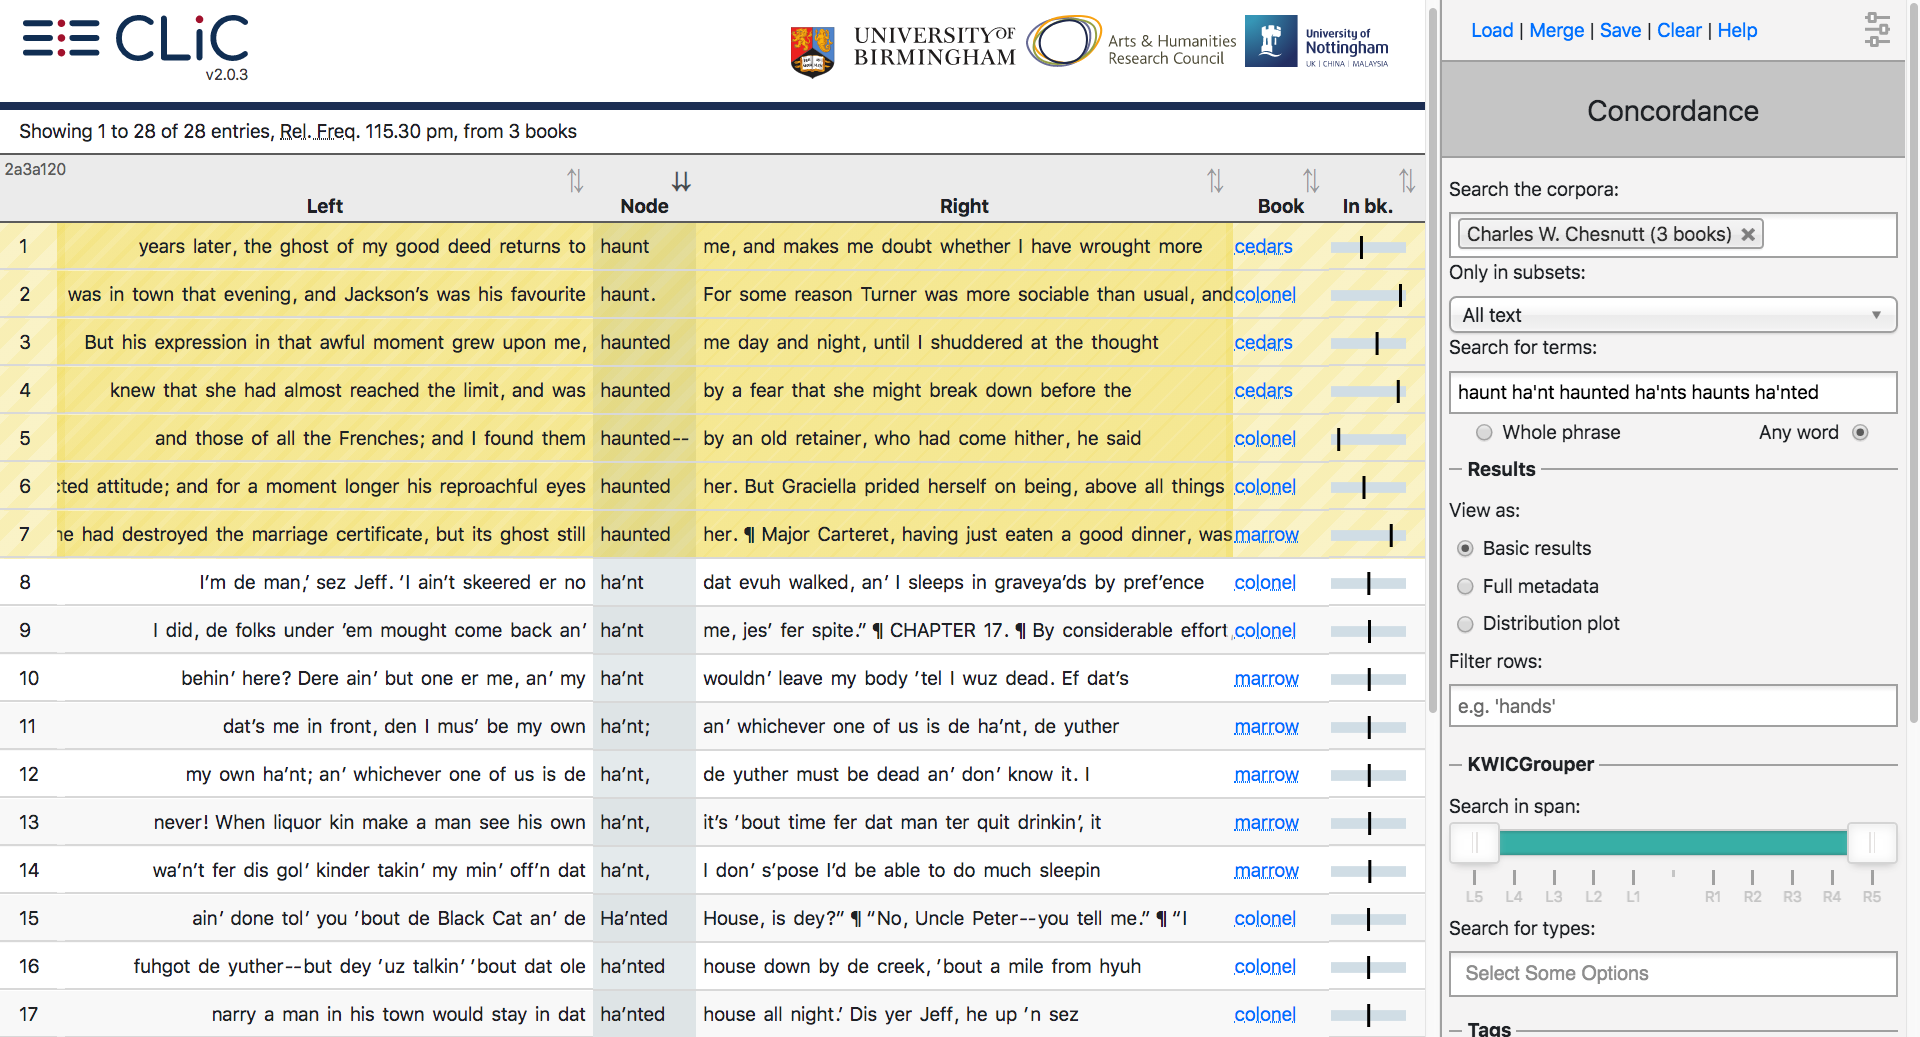 Screenshot for the first seventeen results for haunt/ed (highlighted yellow) and ha'nt/ed in Chesnutt's novels.